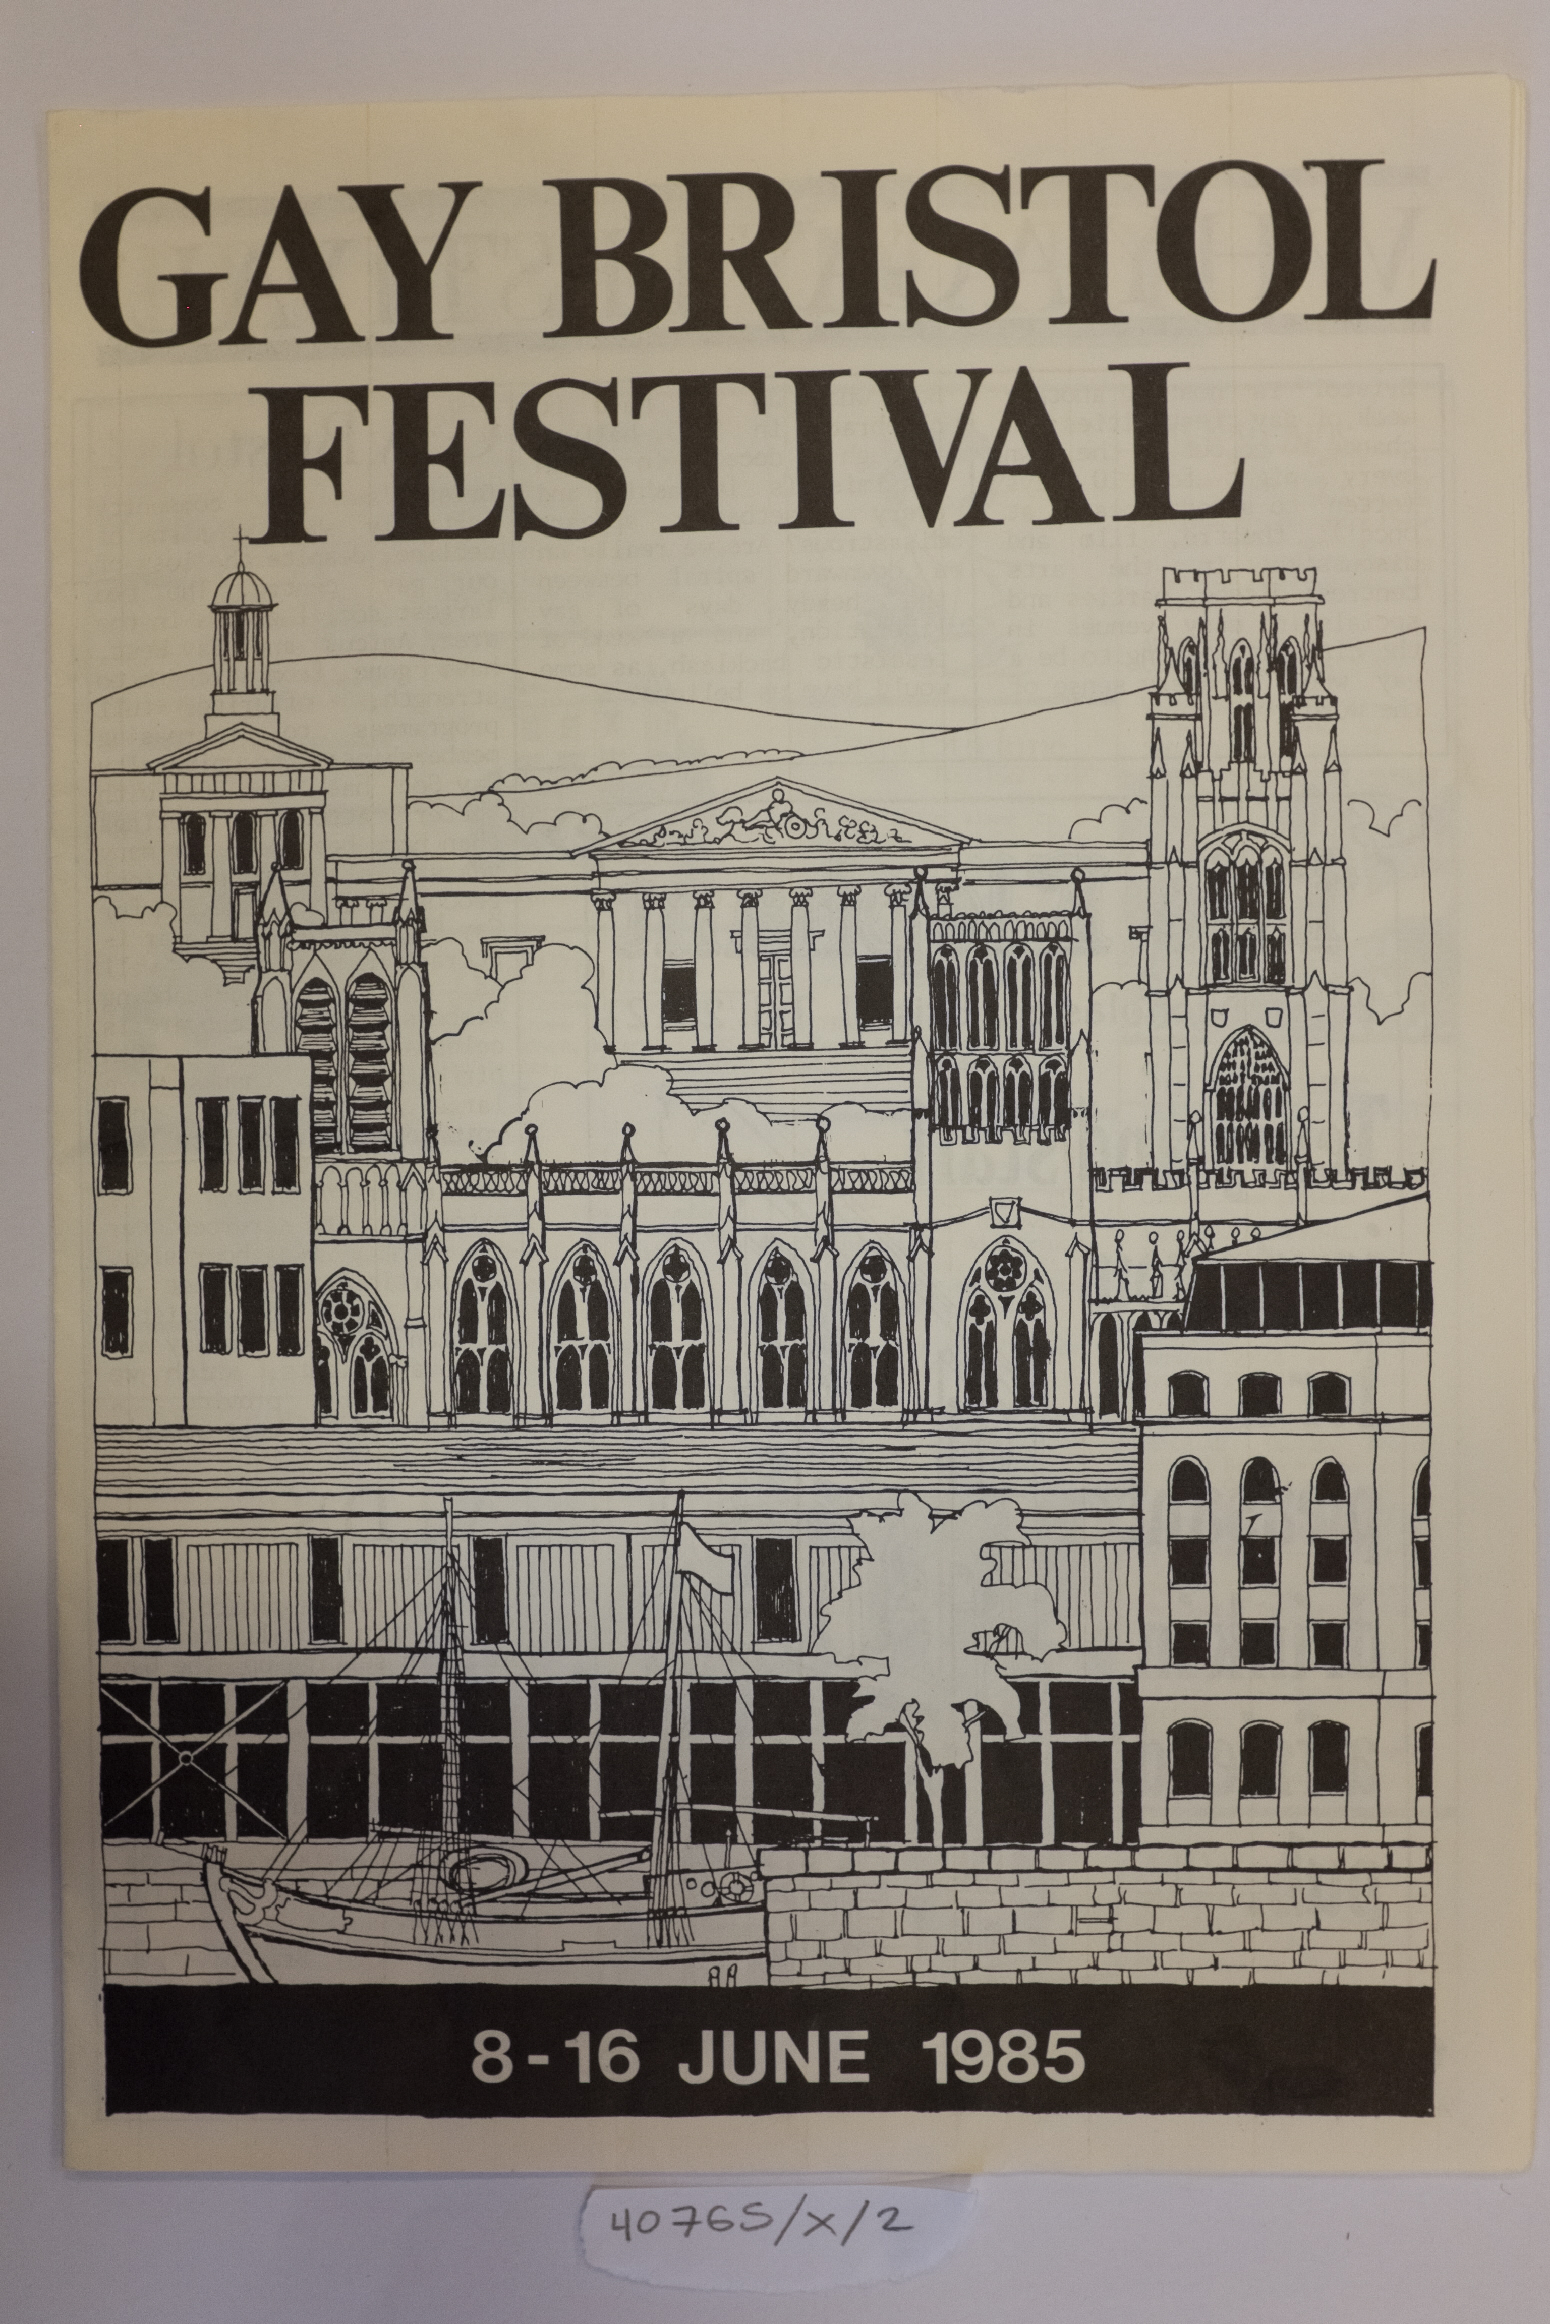 The front page of the program for Gay Bristol festival 1985, featuring a line drawing of several Bristol landmarks